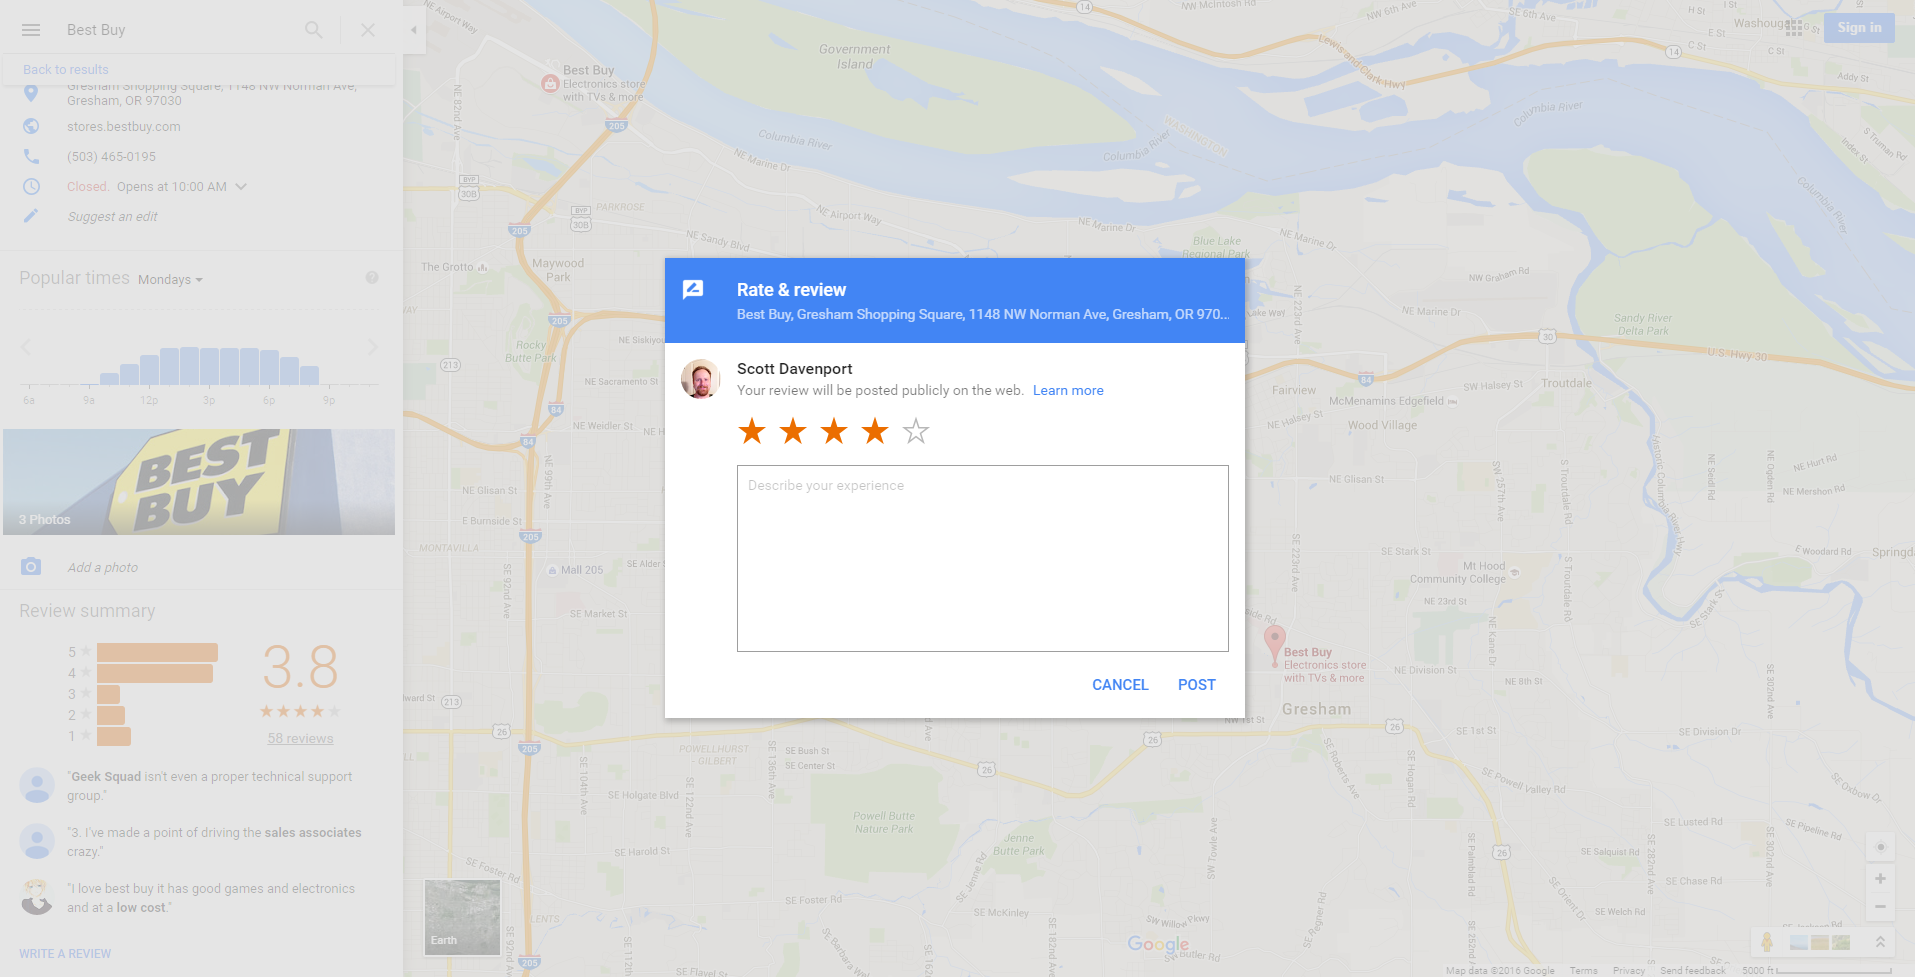 Google Maps Review requirements 2